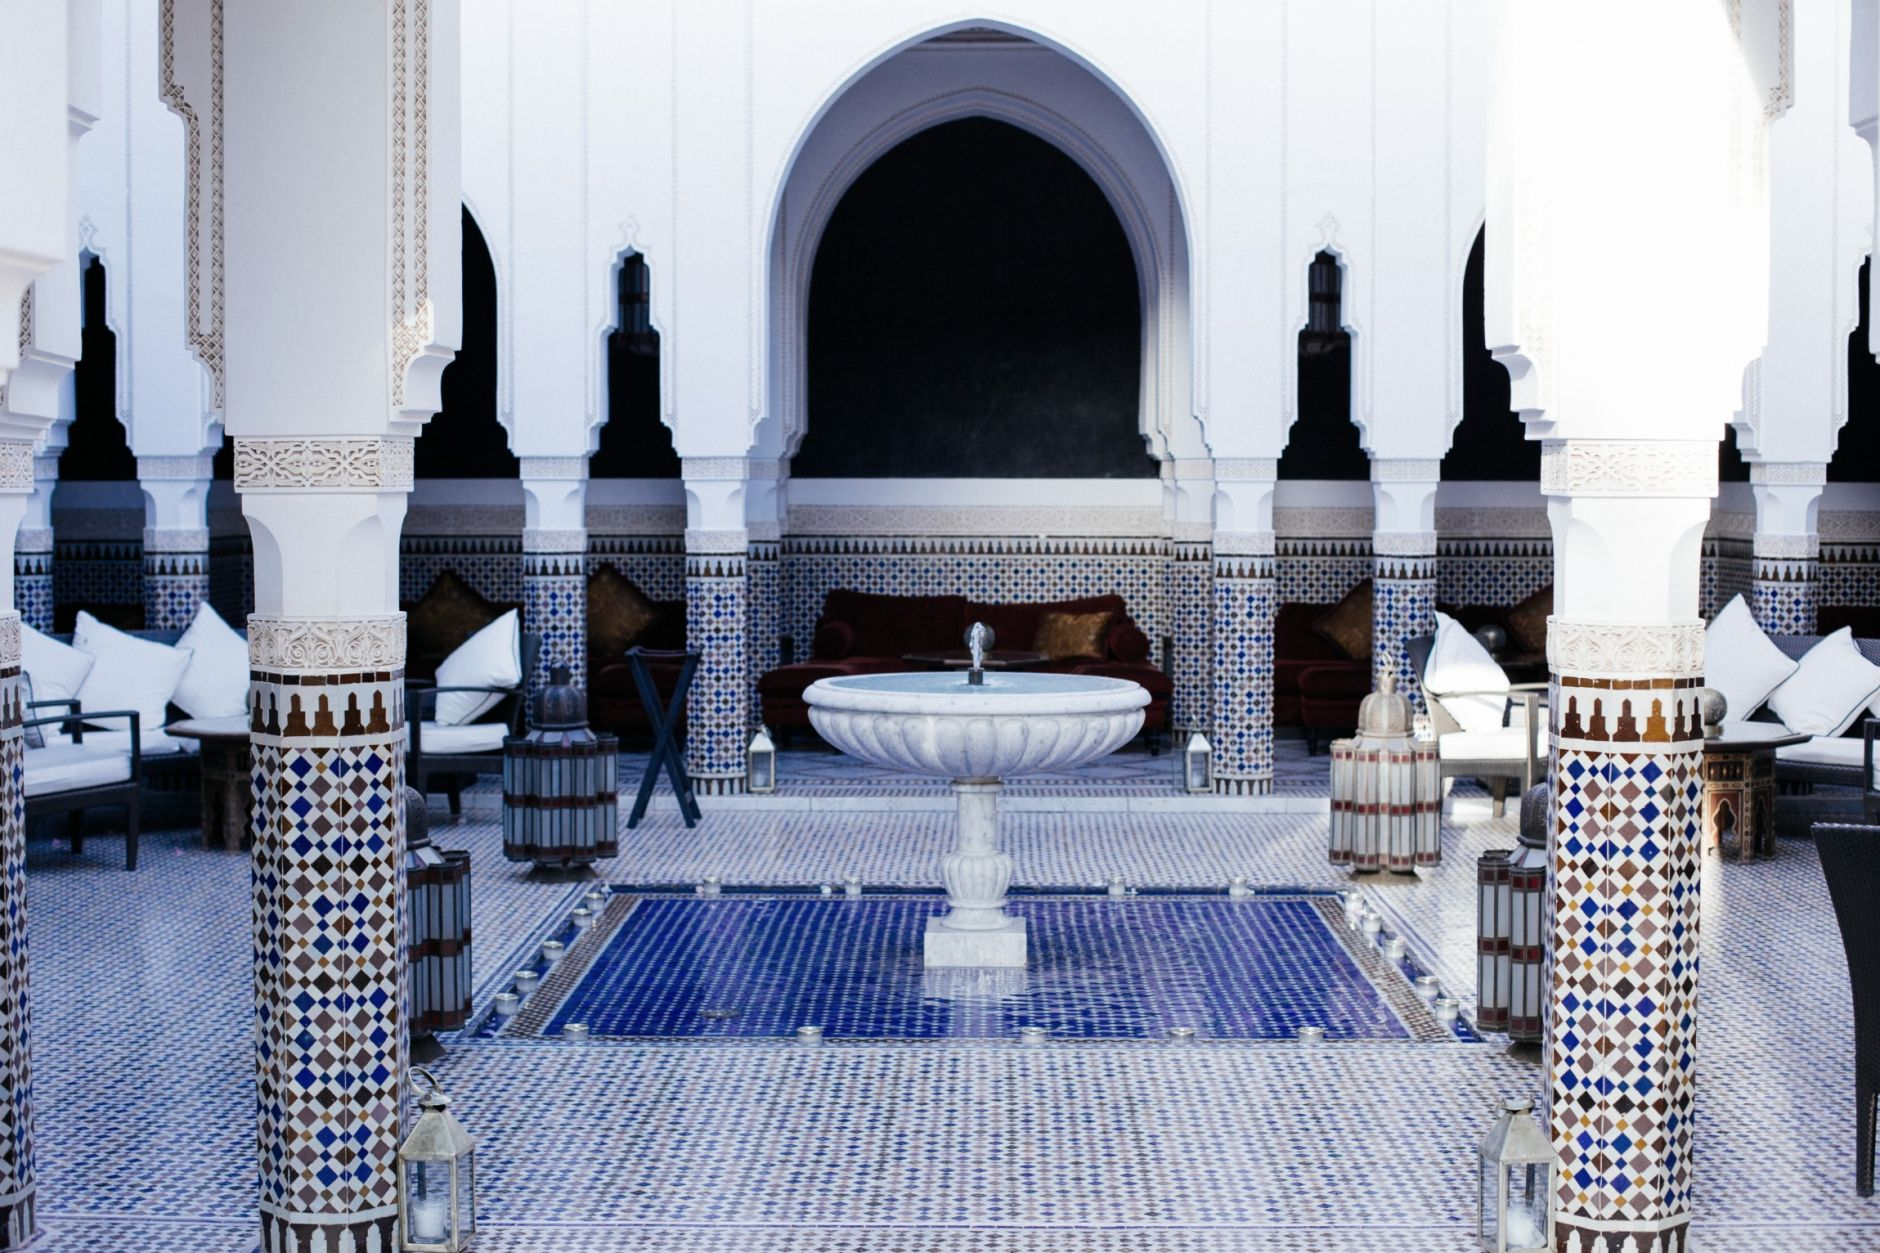 palace-in-marrakesh-morocco-la-mamounia-5-star-luxury-hotel-spa-09